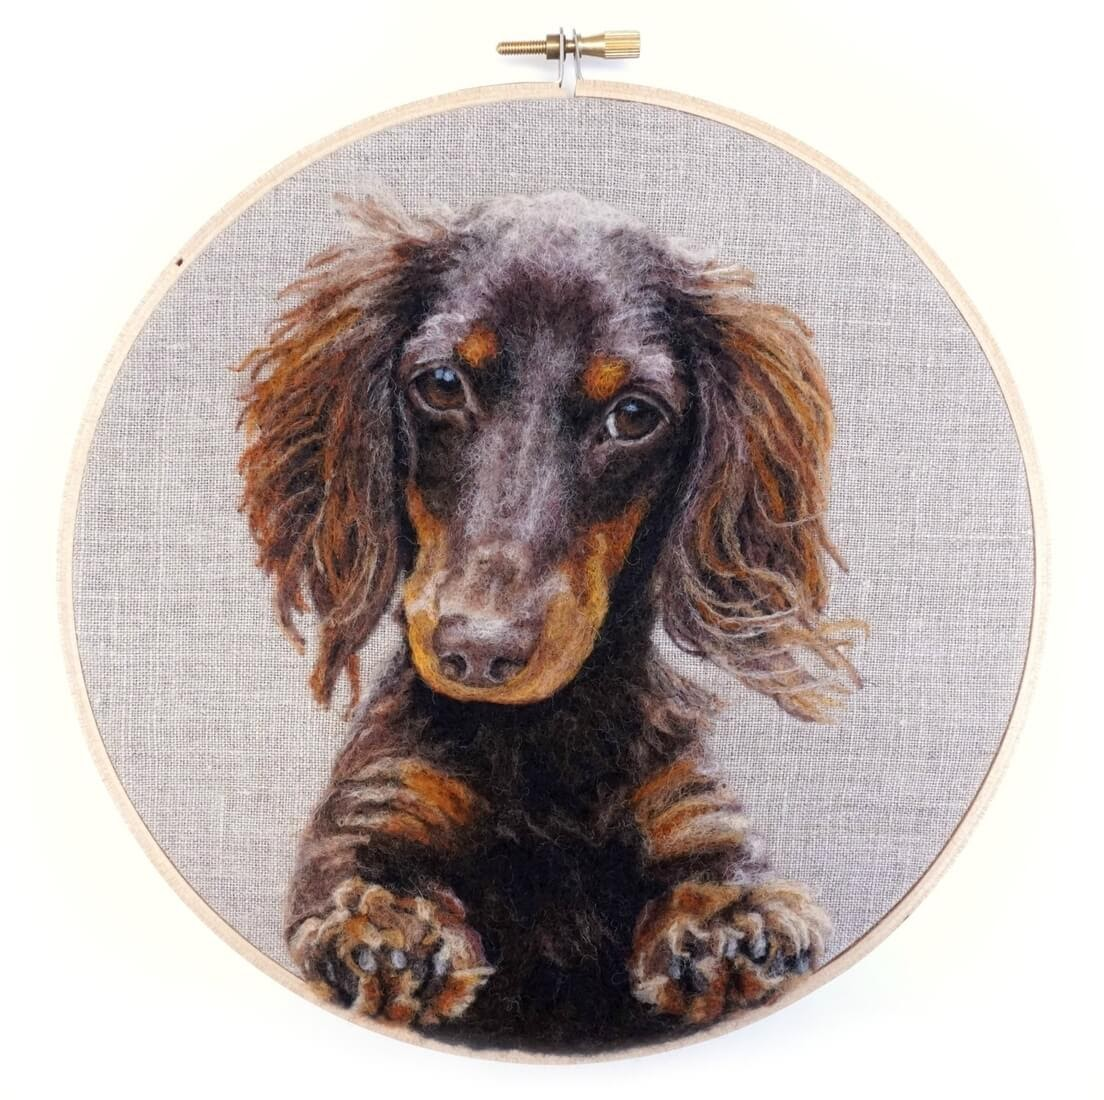 13-Basel-Dani-Ives-Needle-felting-Wool-and-Needle-Animal-Portraits-www-designstack-co